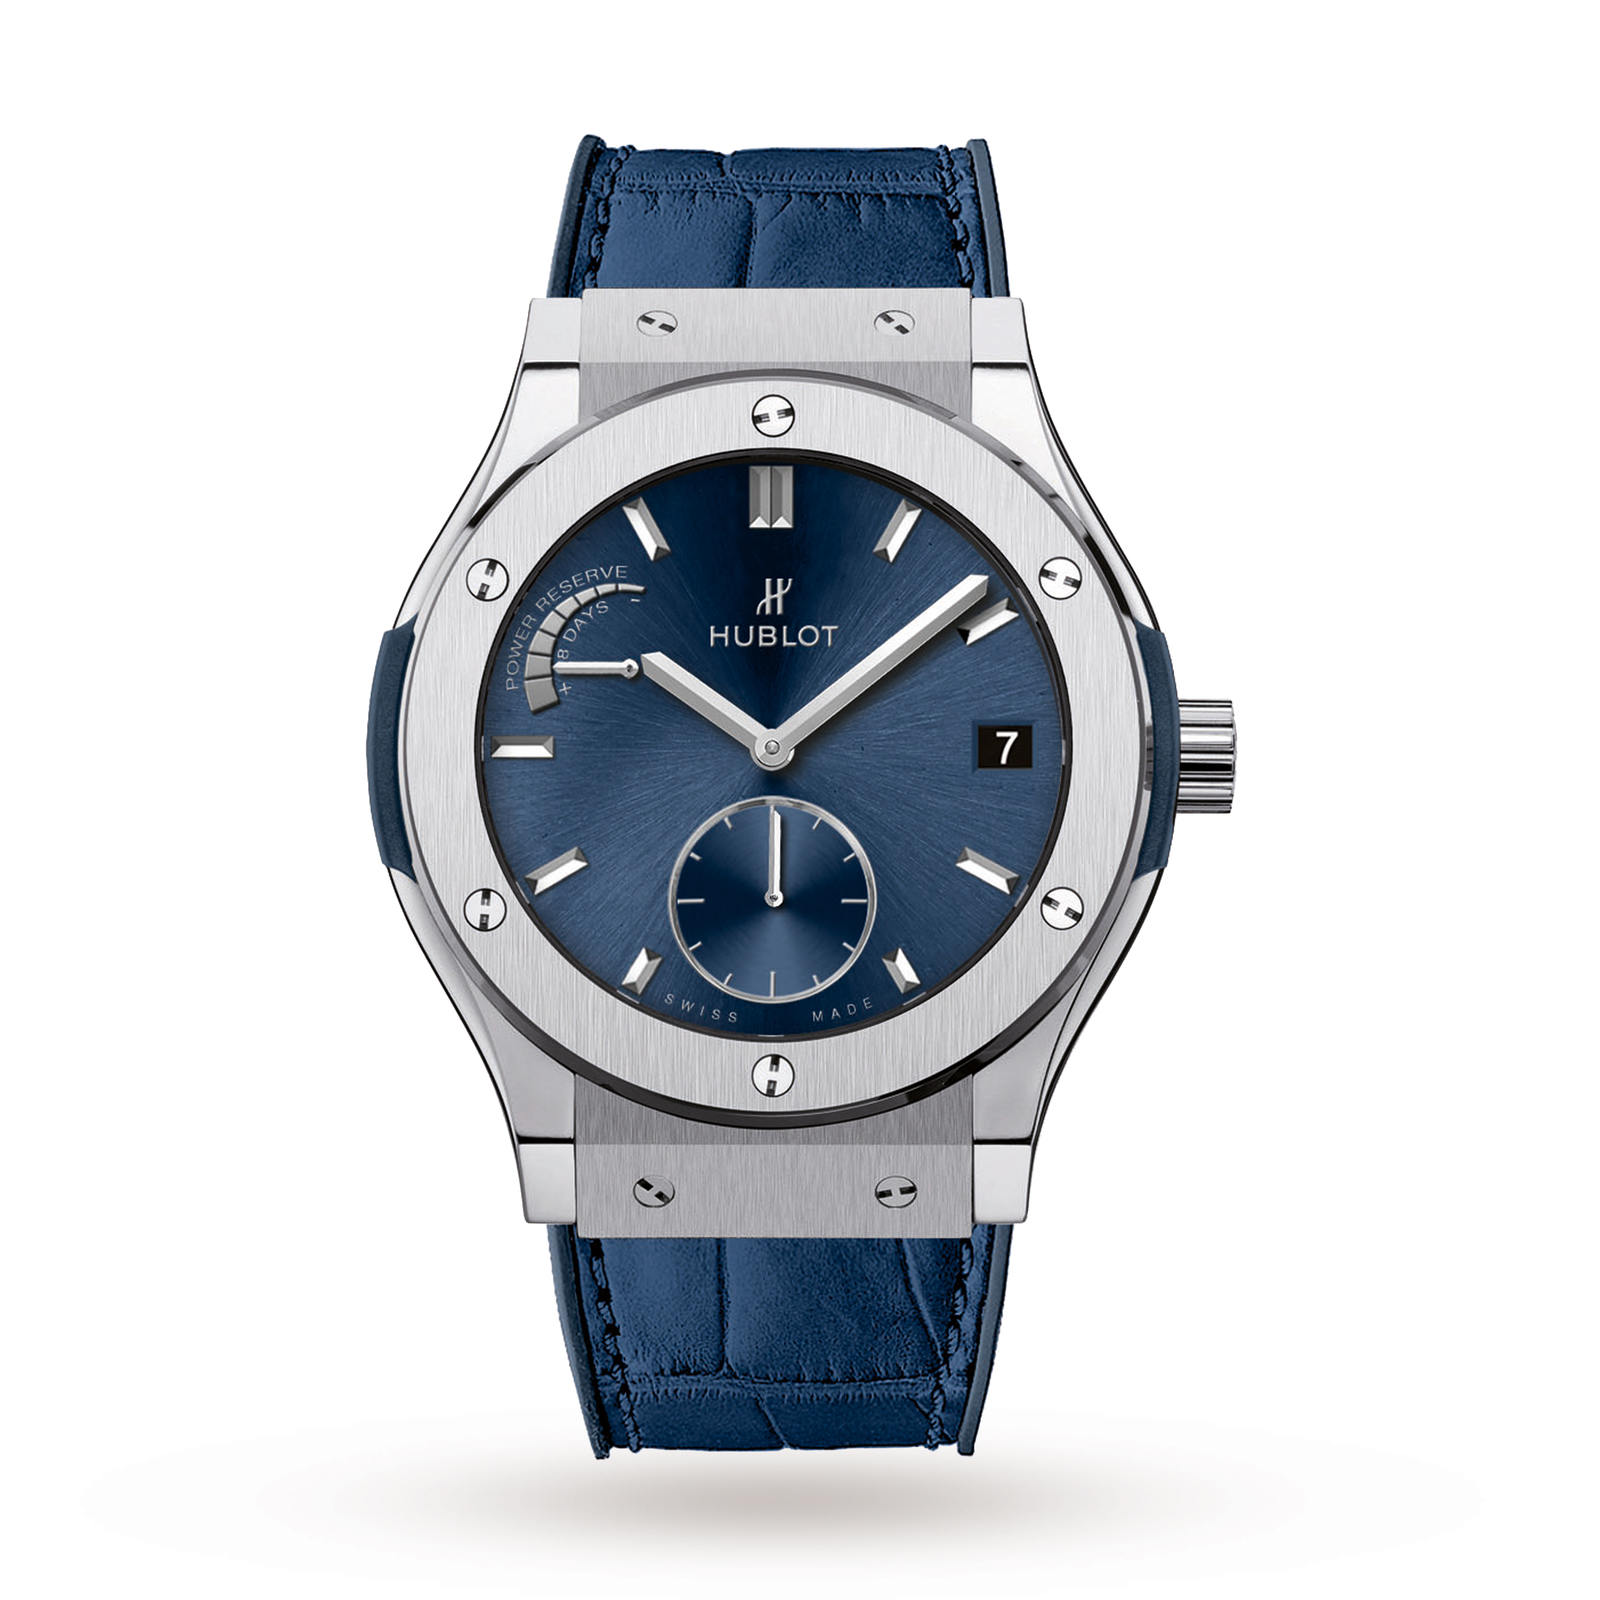 Hublot Classic Fusion Power Reserve Mens Watch